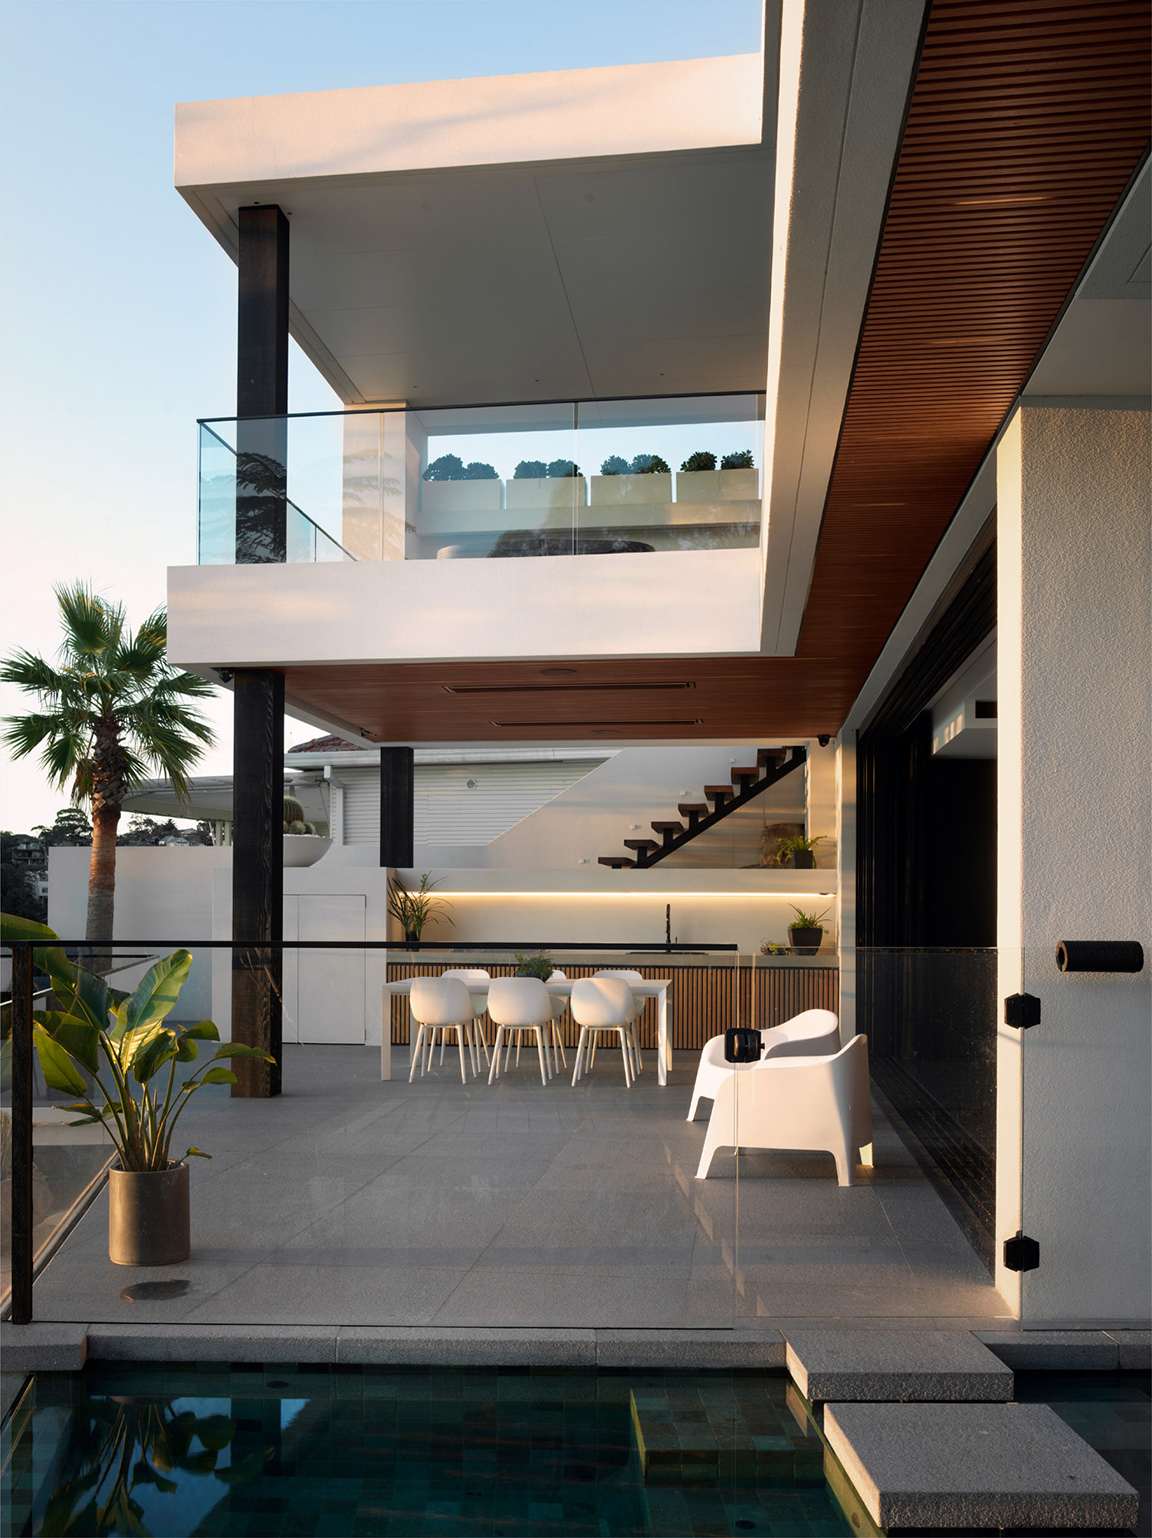 luke-butterly-2020-Oyster-Bay-House-by-Couvaras-Architecture-Sydney-NSW-42